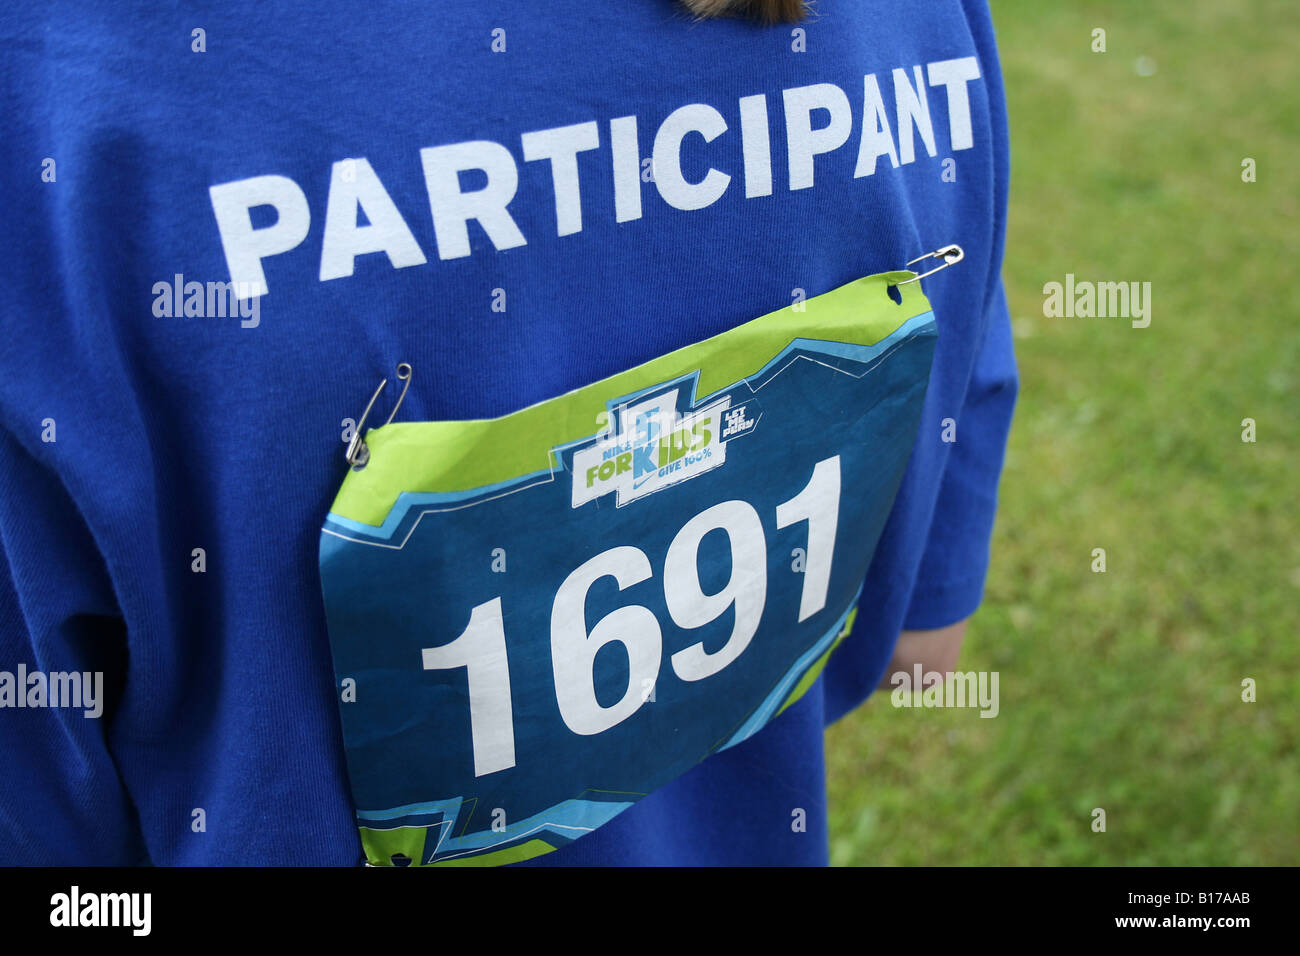 Participant 1691 at the 2nd Annual Nike 5K for Kids landscape - Stock Image